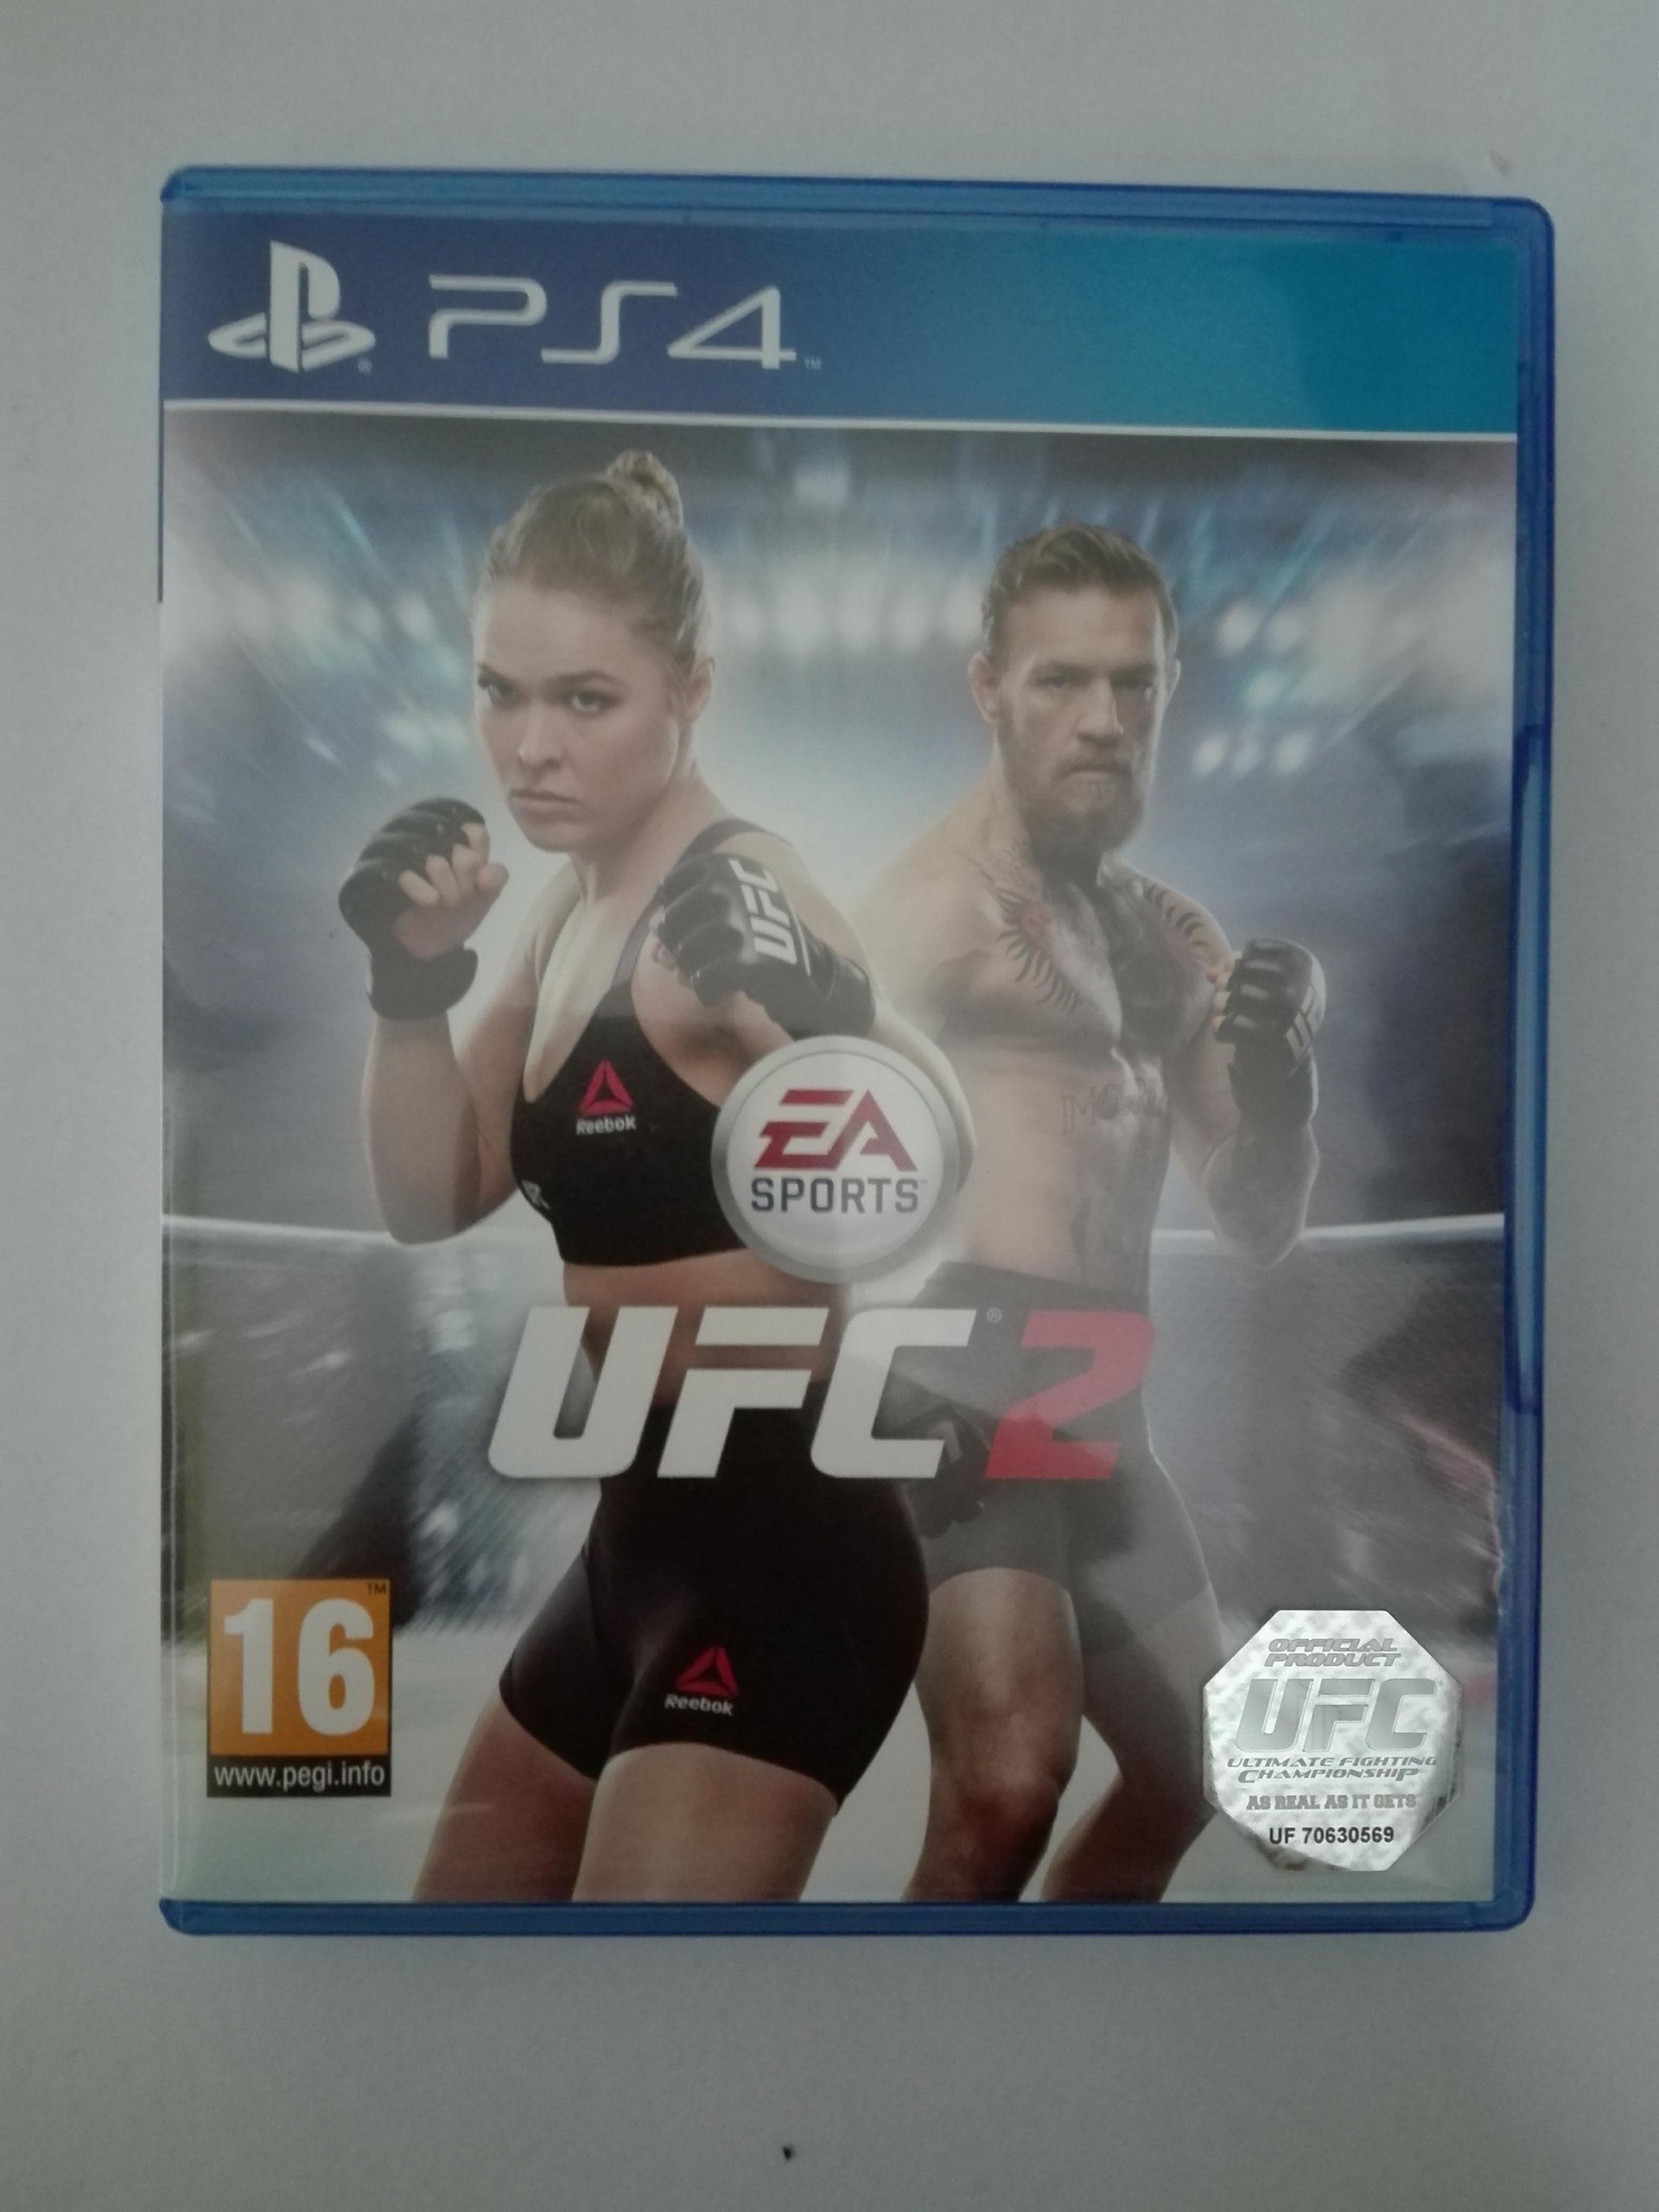 Okazja Ufc 2 Ea Sports Ps4 Playstation 4 7204102525 Oficjalne Sony